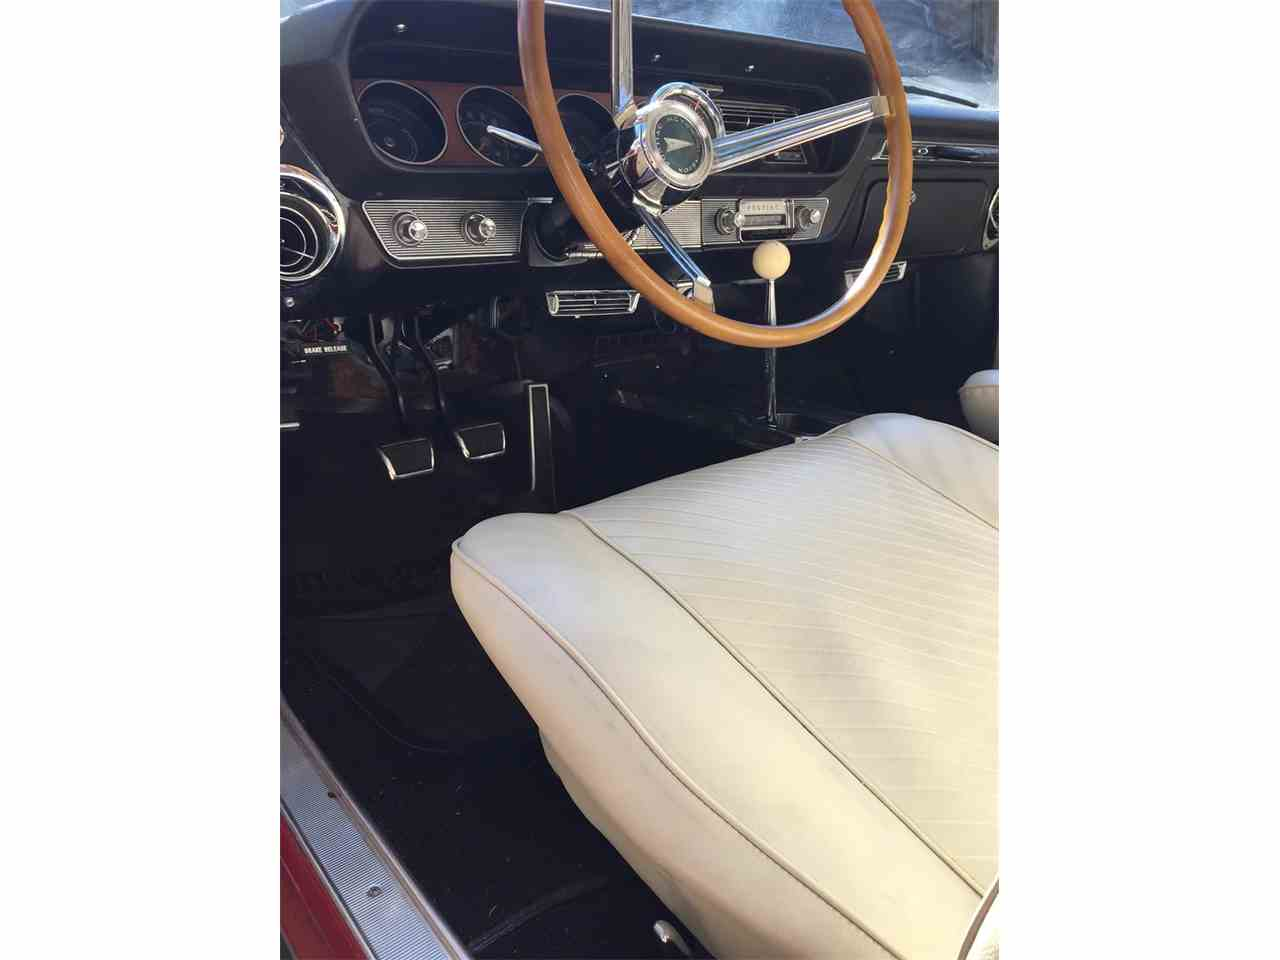 Large Picture of '65 GTO located in Plano tx. - $43,900.00 Offered by a Private Seller - JBMS